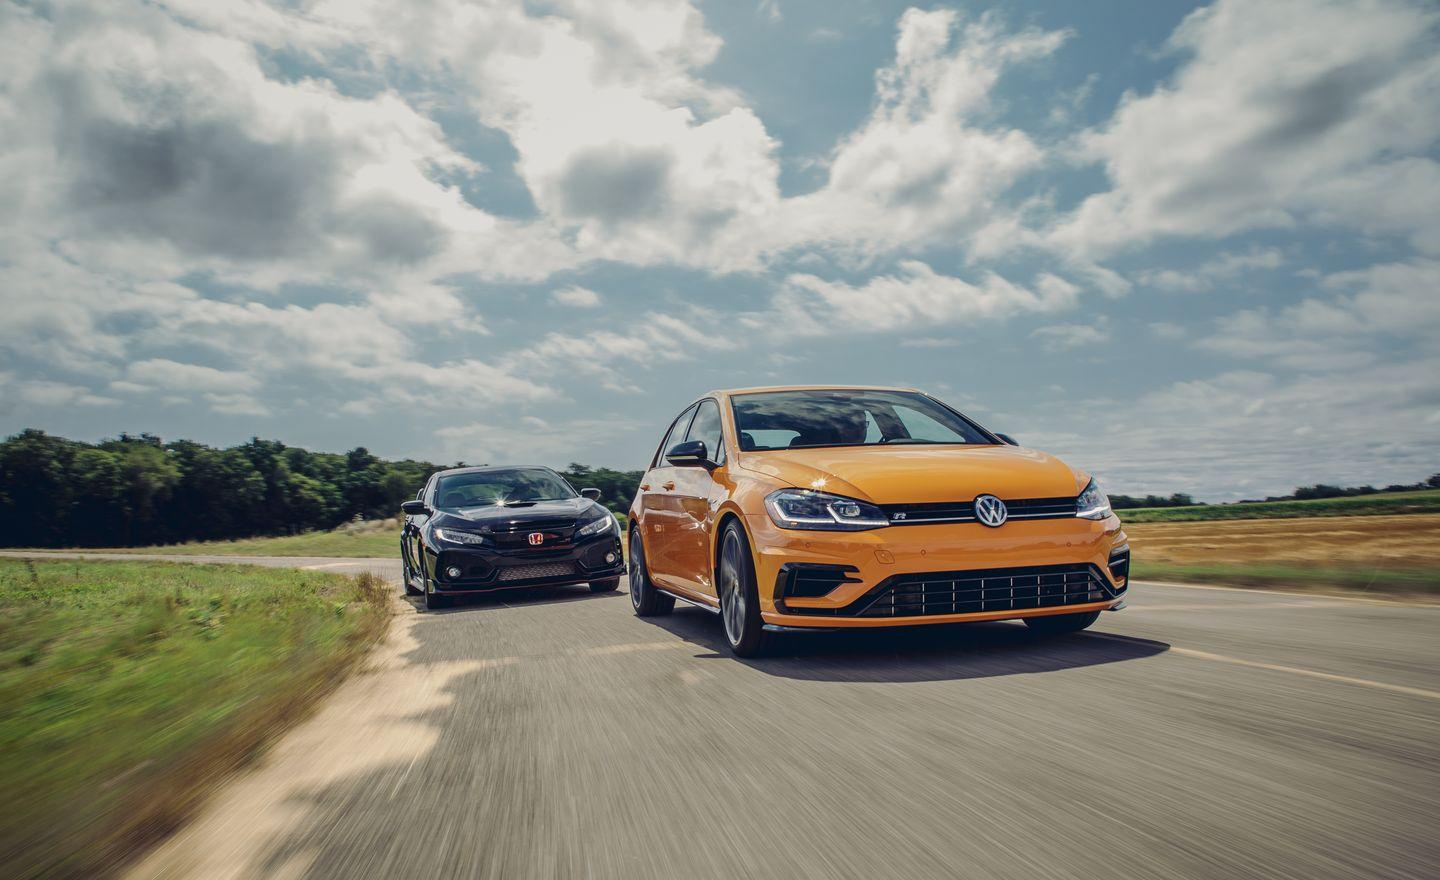 <p>Both the Civic Type R and the Golf R come fully equipped for battle at their base prices: $37,230 for the Honda and $41,365 for the VW.</p>